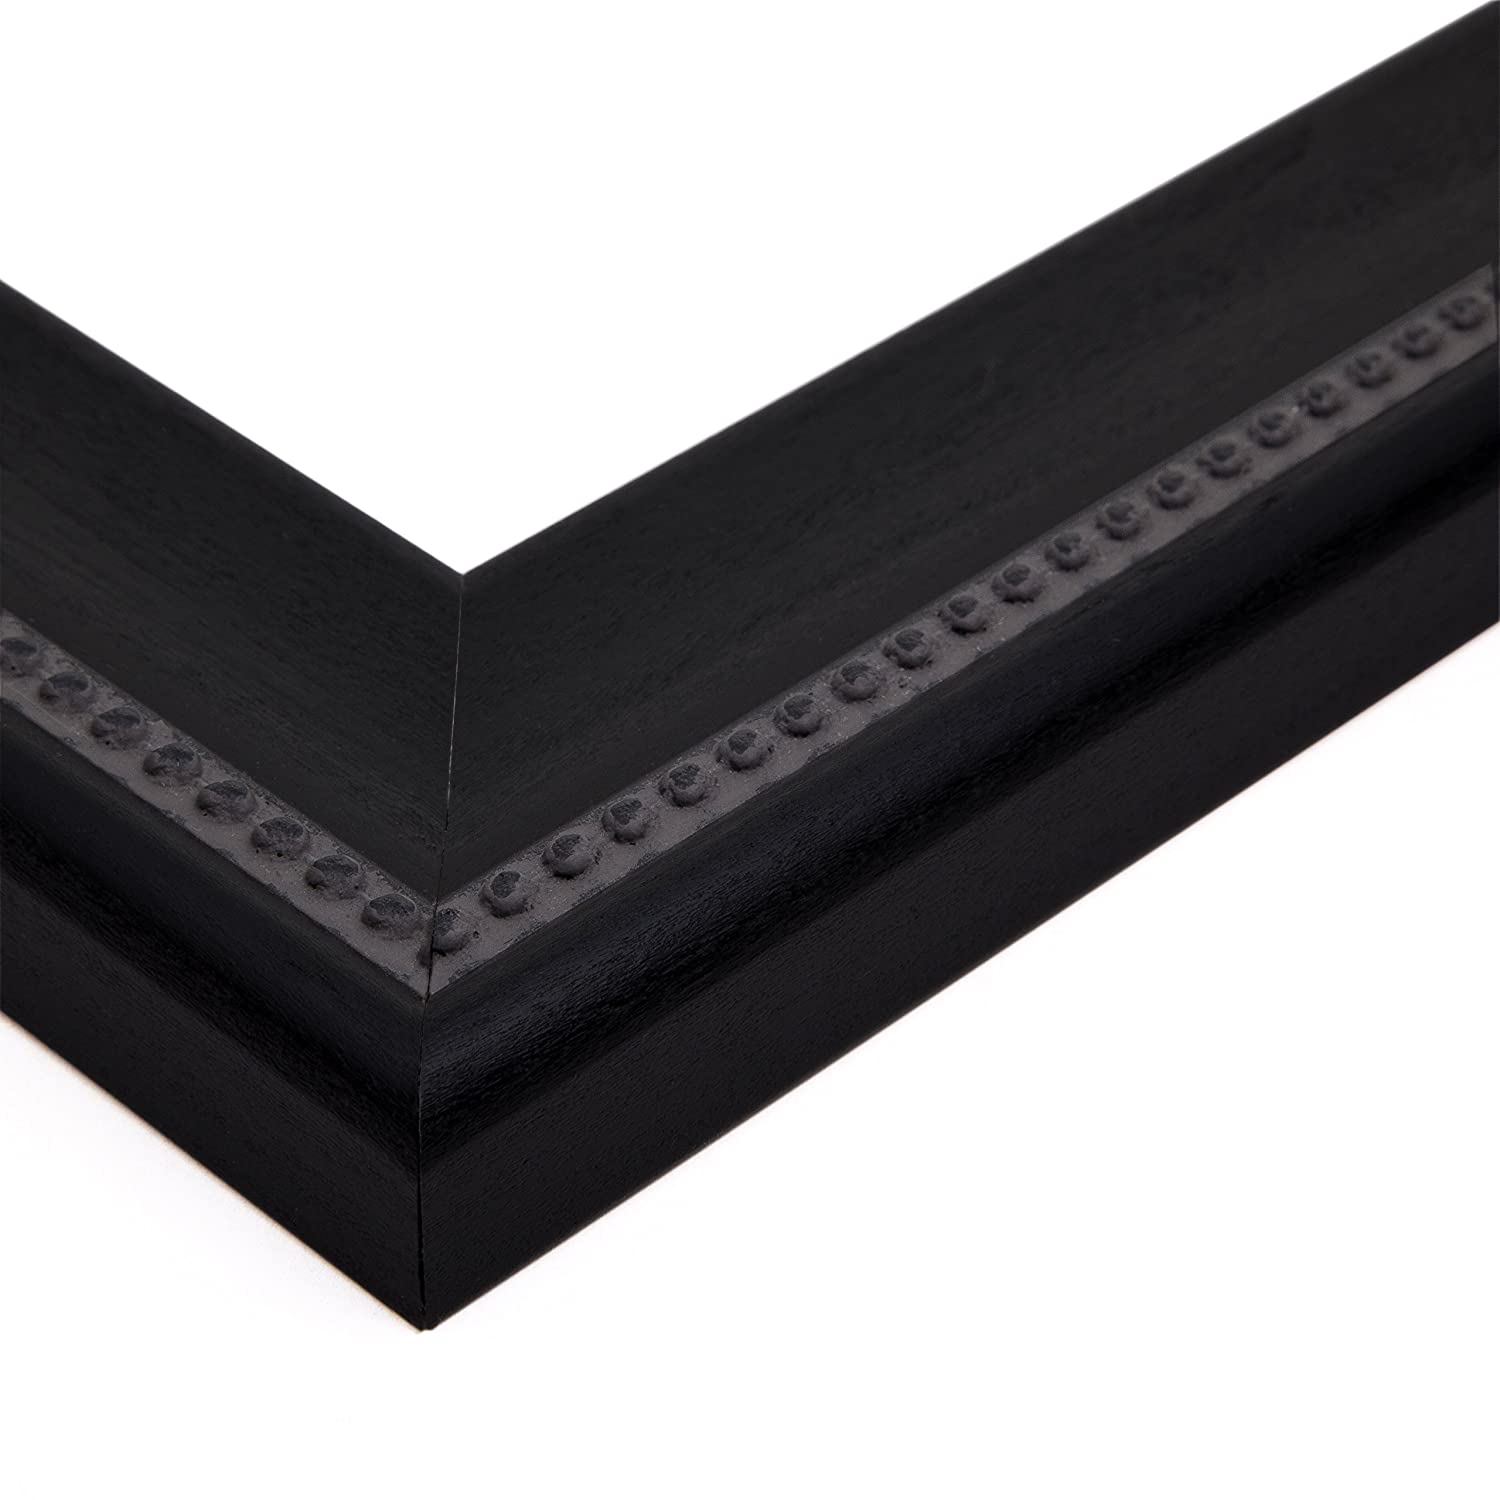 ArtToFrames 14x21 inch Matte Black Slope with Beaded Top Wood Picture Frame 2WOMM469520-14x21